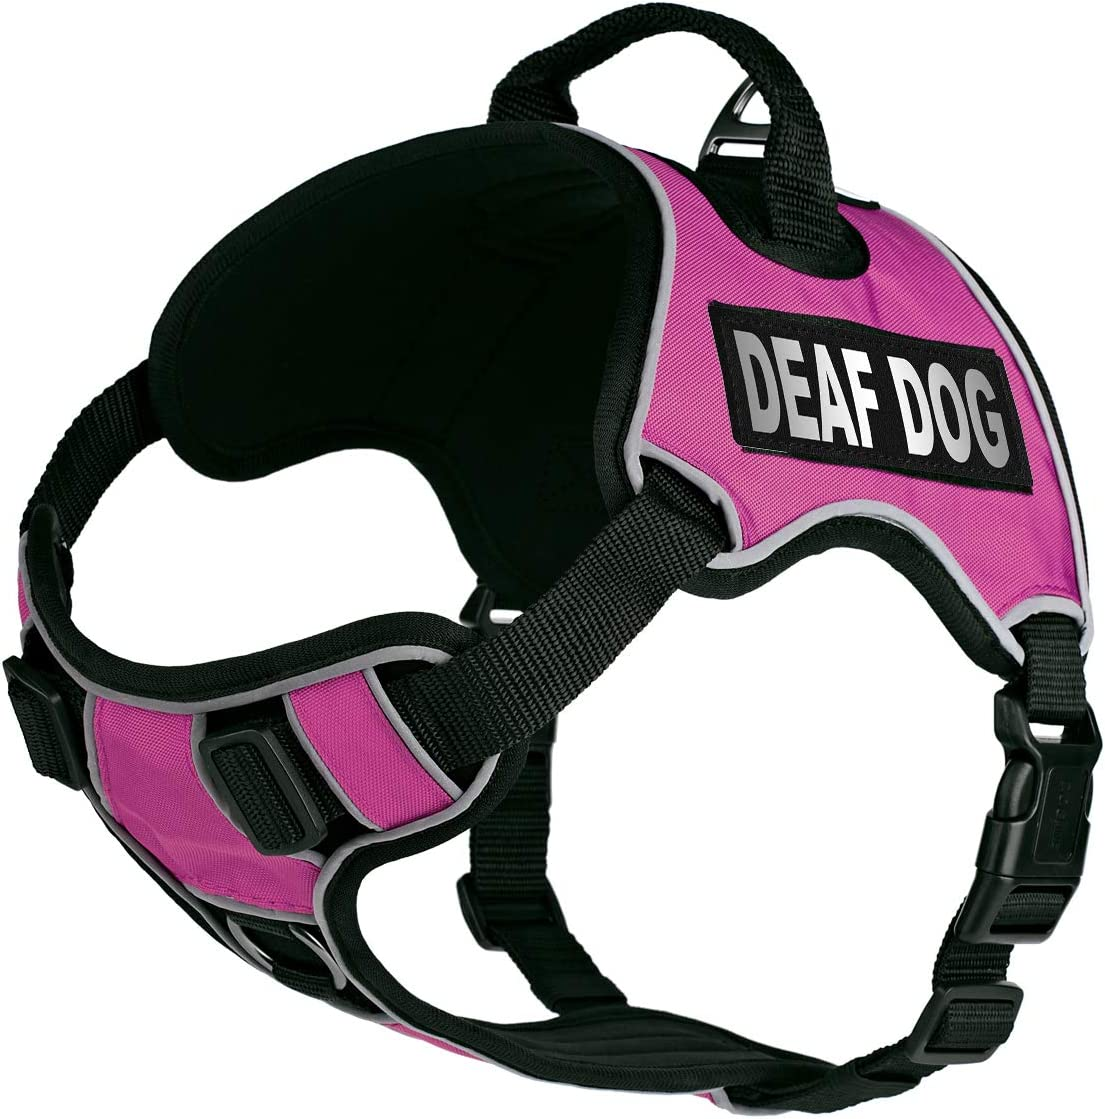 excellence Dogline Quest No-Pull Dog Harness Remov Deaf with Max 86% OFF Reflective